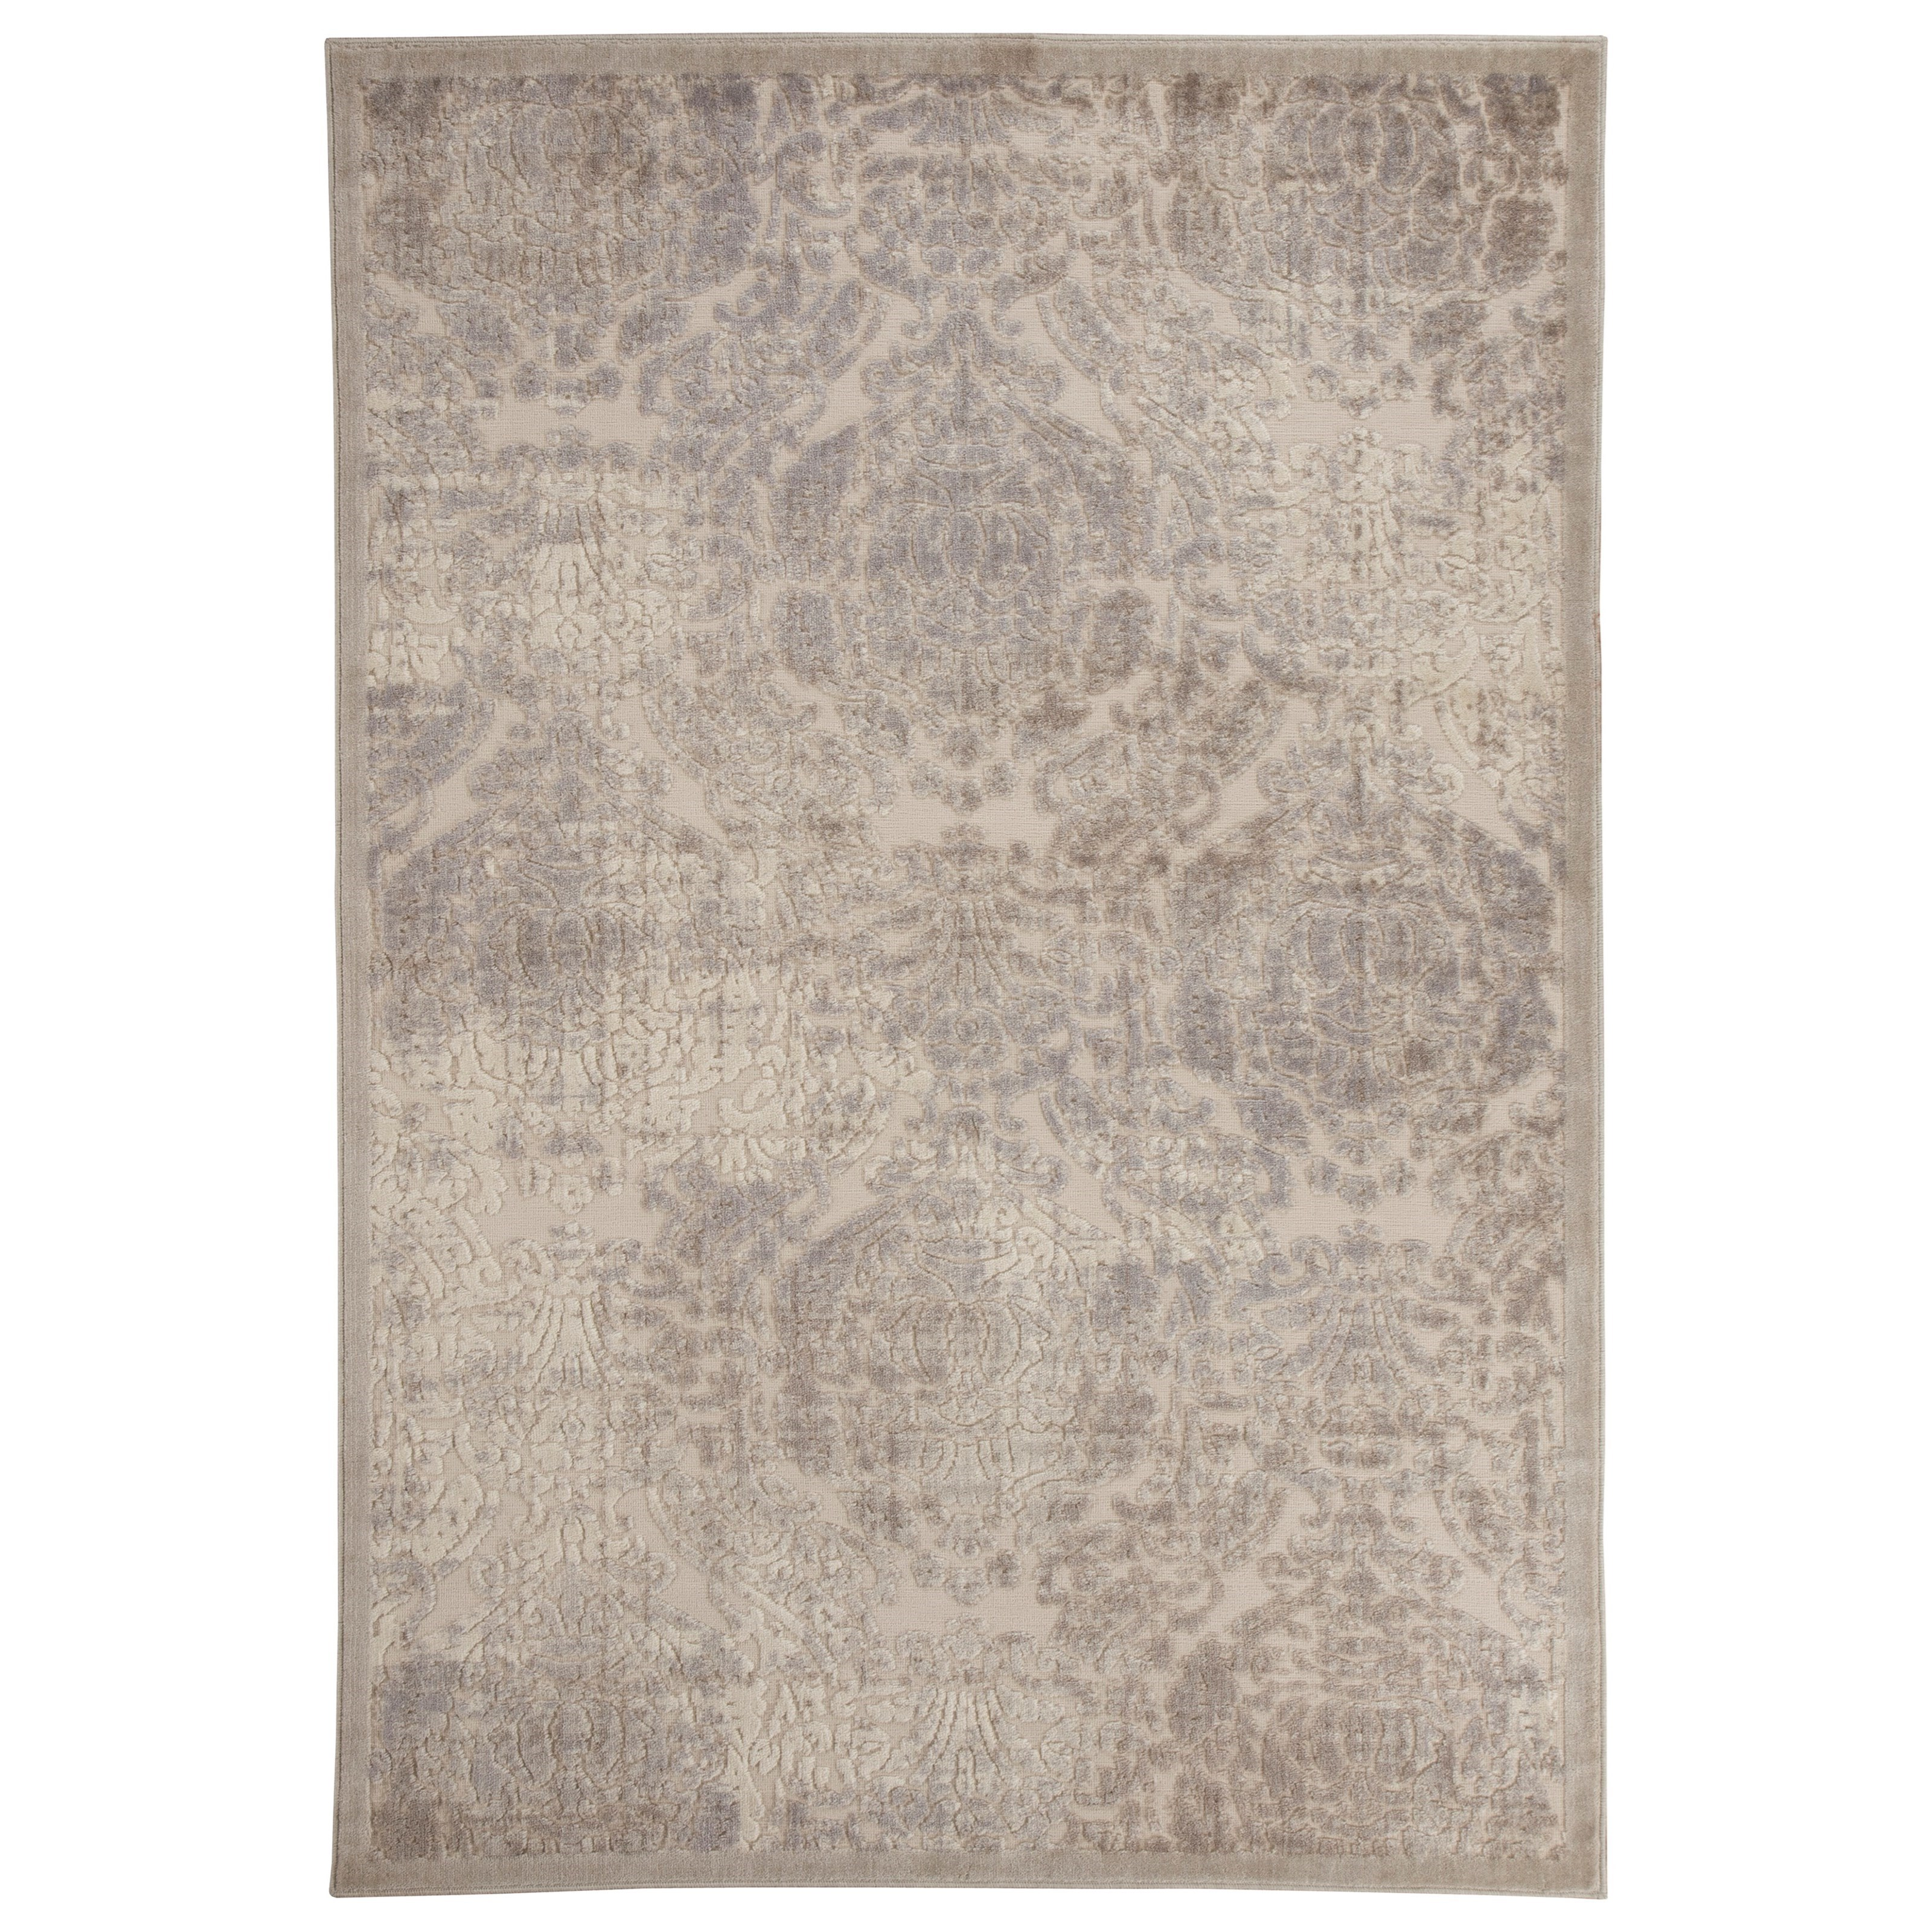 Signature Design by Ashley Transitional Area Rugs Fulci Cream Medium Rug - Item Number: R401712